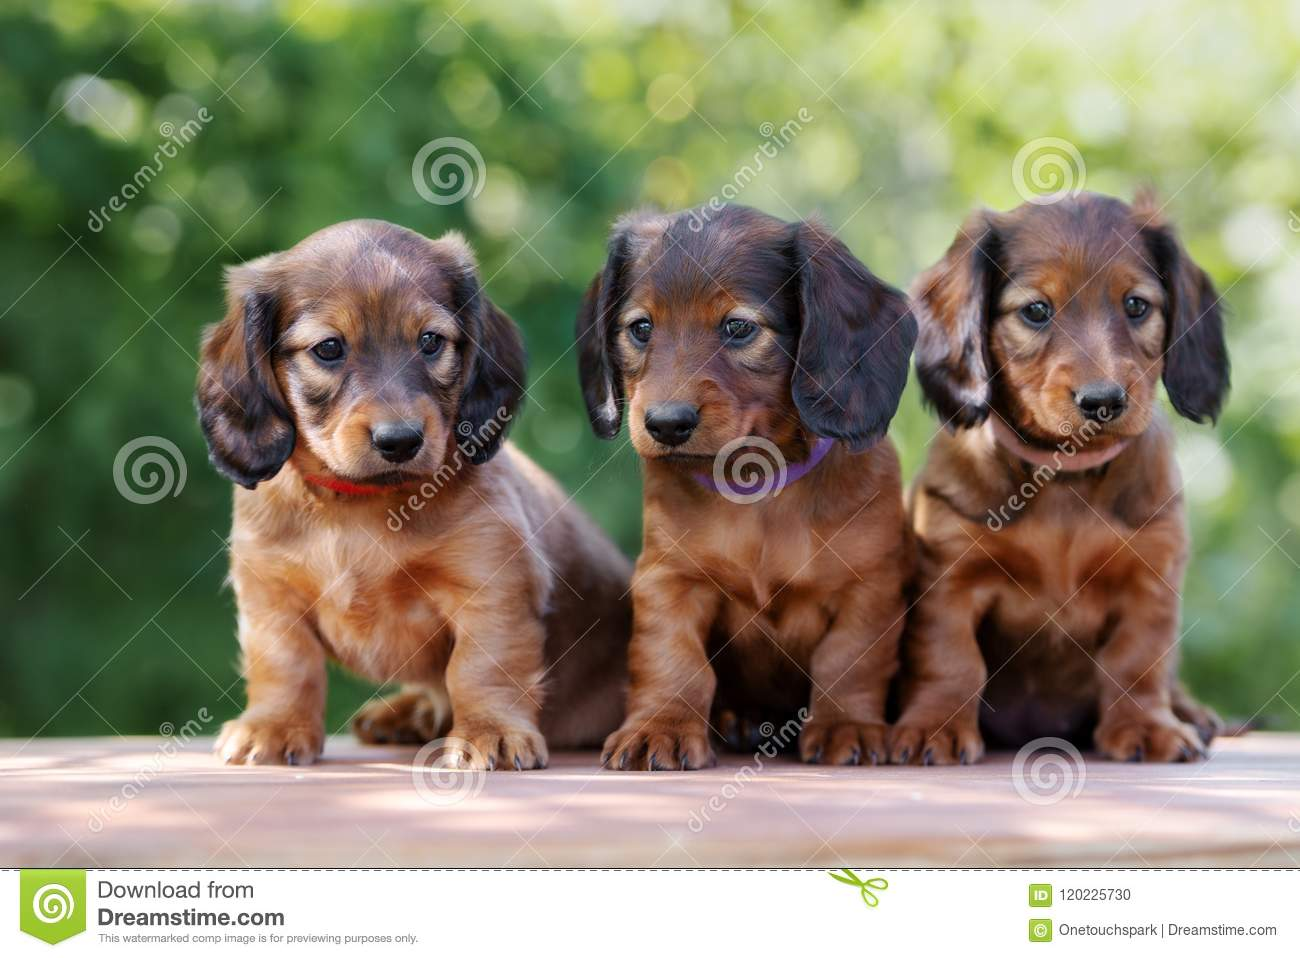 Adorable Dachshund Puppies Outdoors In Summer Stock Photo Image Of Ears Miniature 120225730